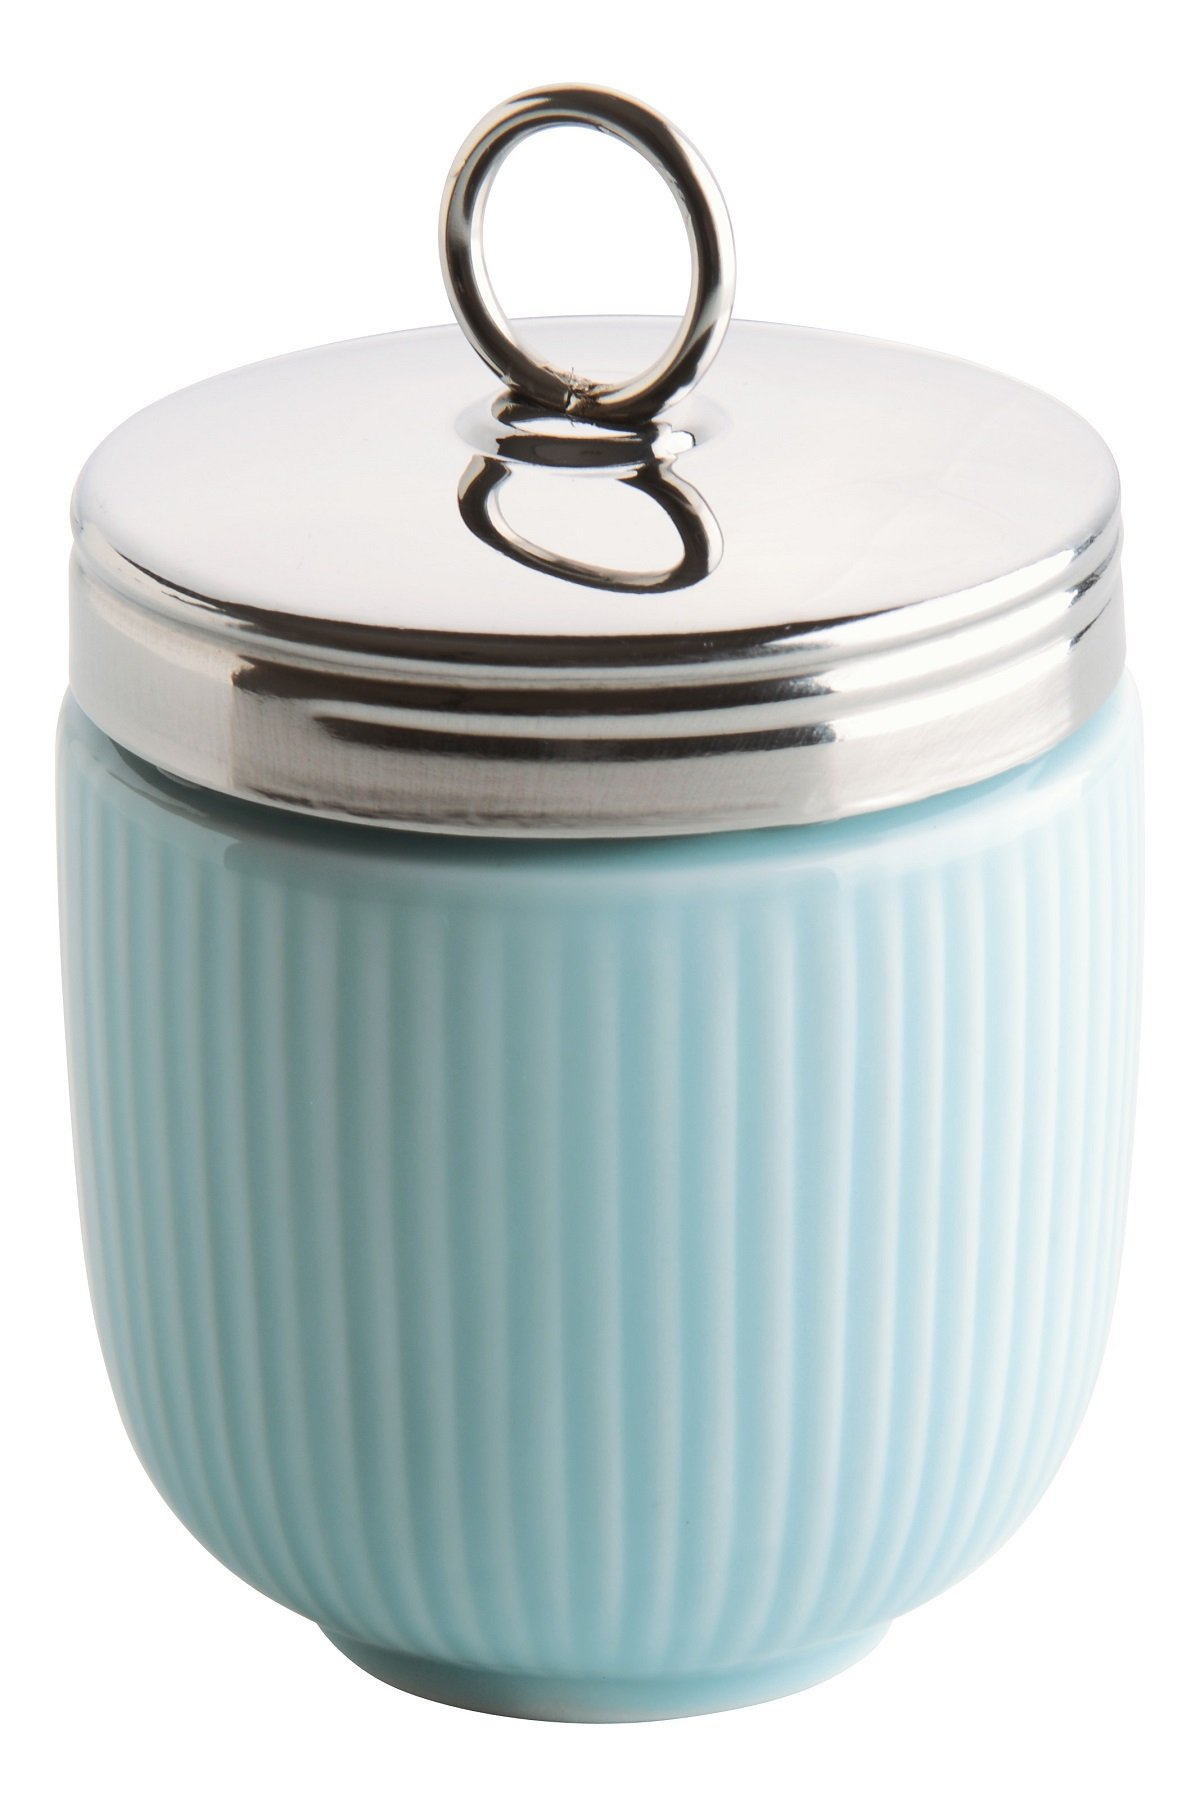 DRH Celadon Blue Egg Coddler For Easy Cook Meals and Ways To Cook Eggs In Porcelain Dish